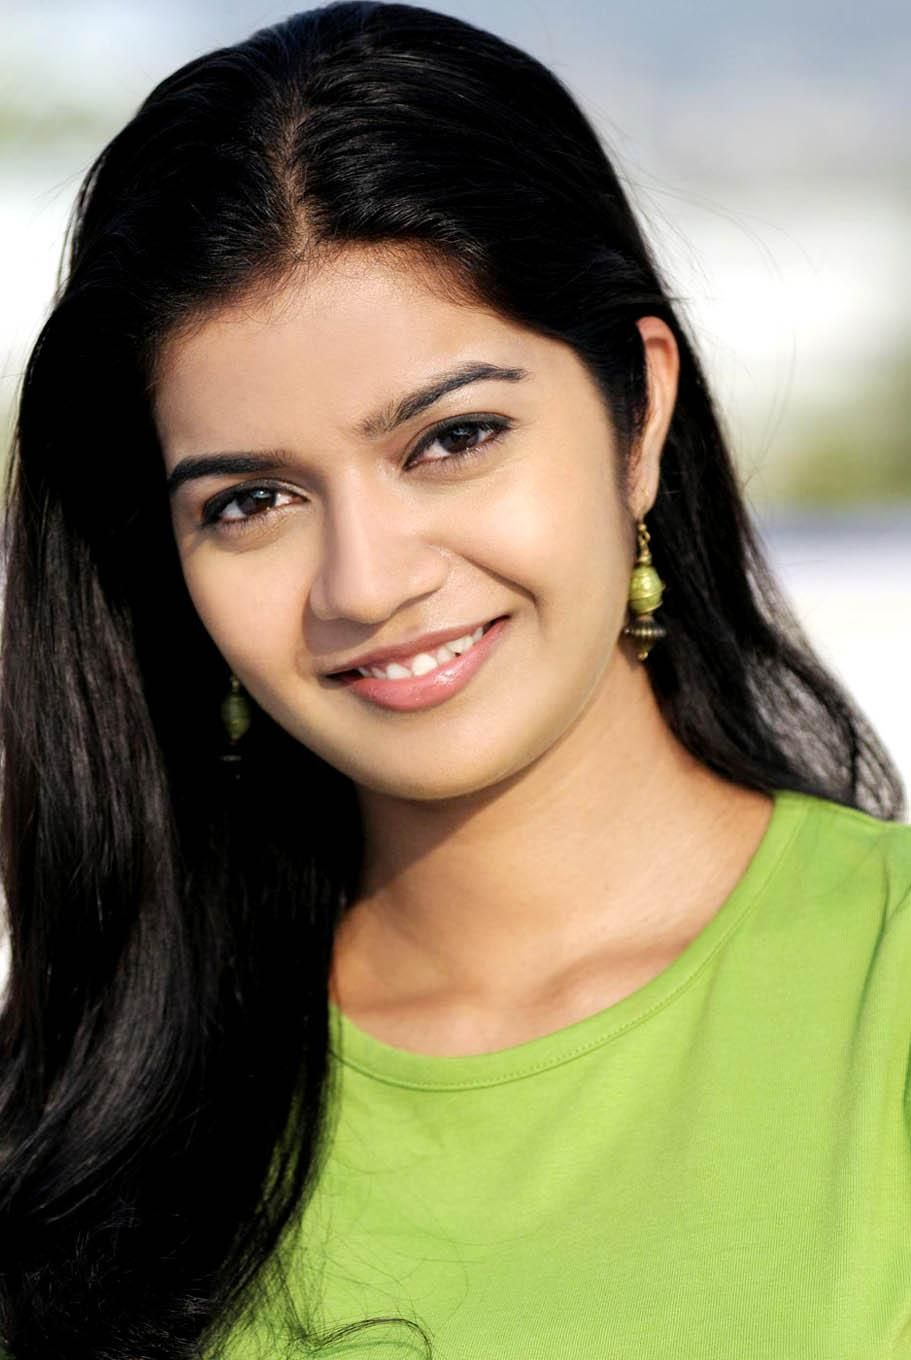 Swati Reddy Hairstyles Celebrity Hairstyles South Indian Actress Beauty Smile South Indian Actress Photo